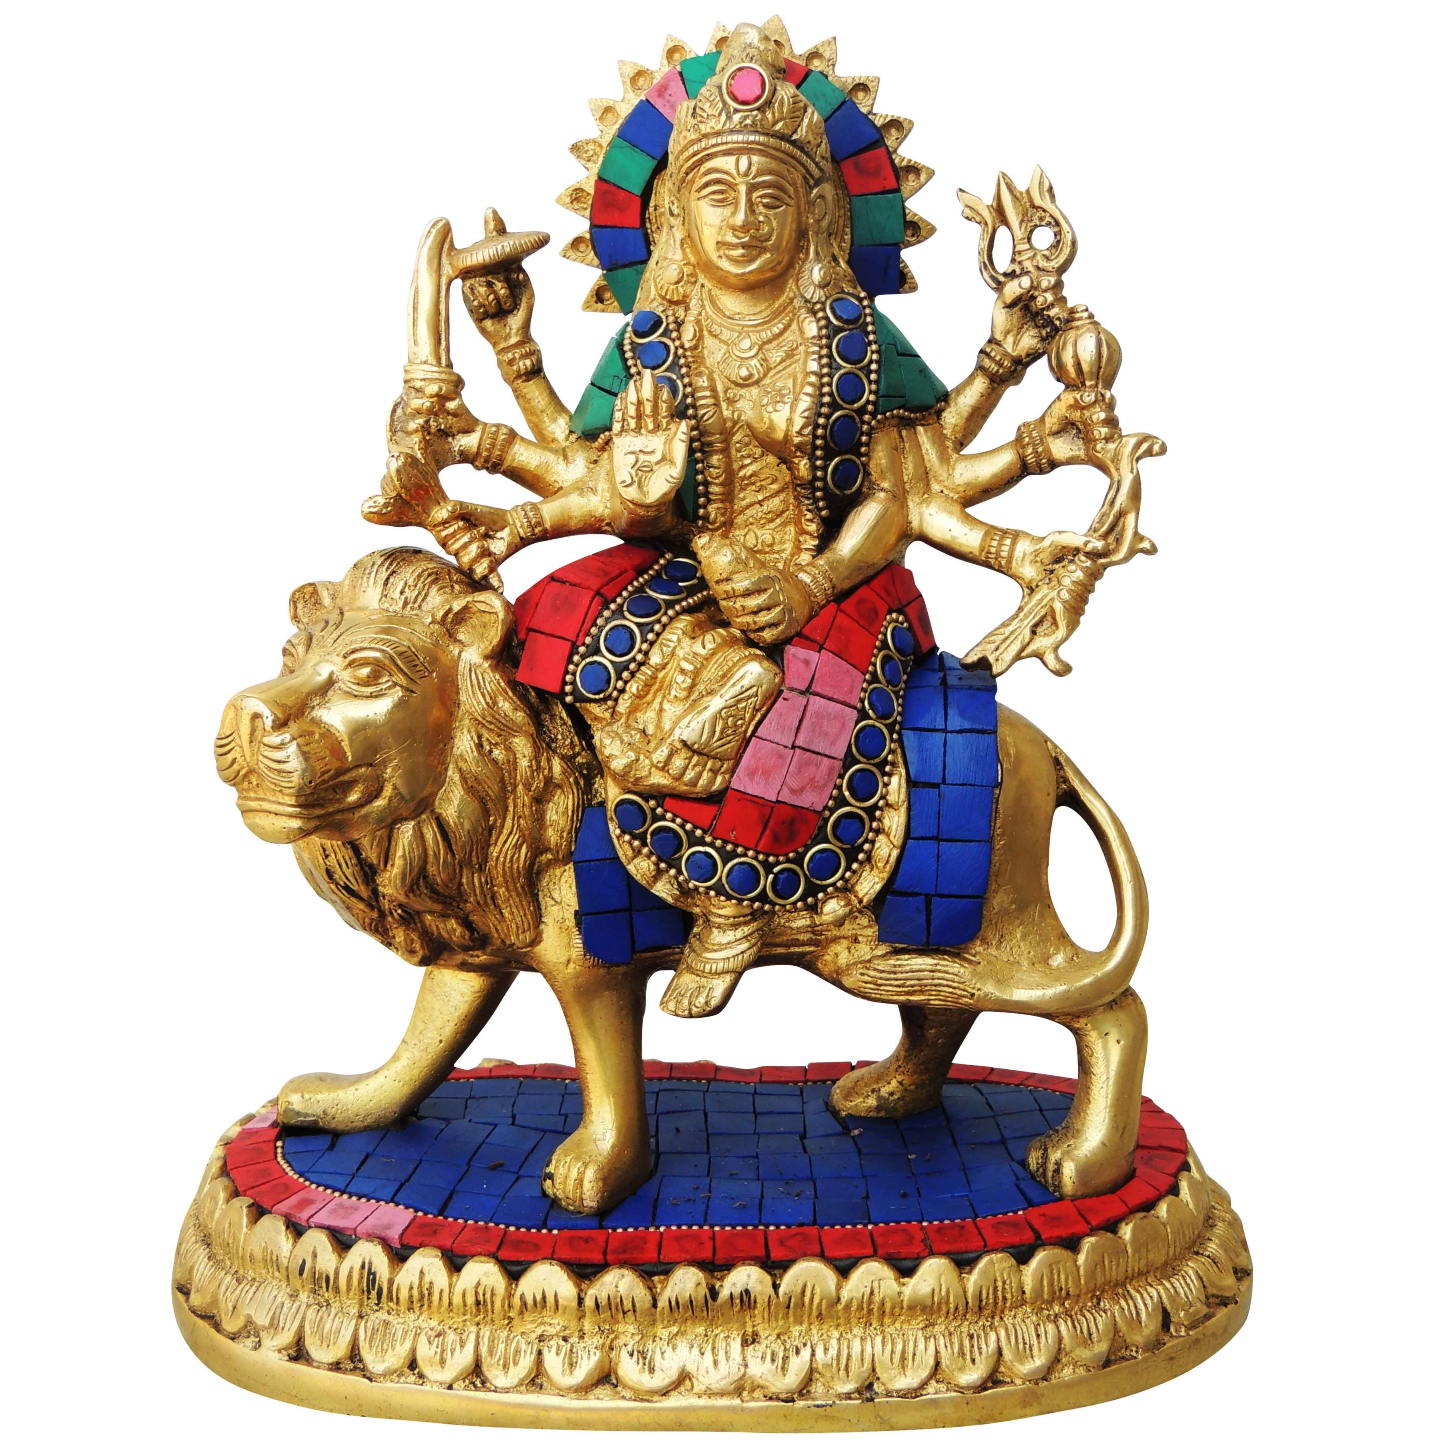 Brass Durga Murti Statue idol with Turquoise Coral stone work - 84.59 inch BS440